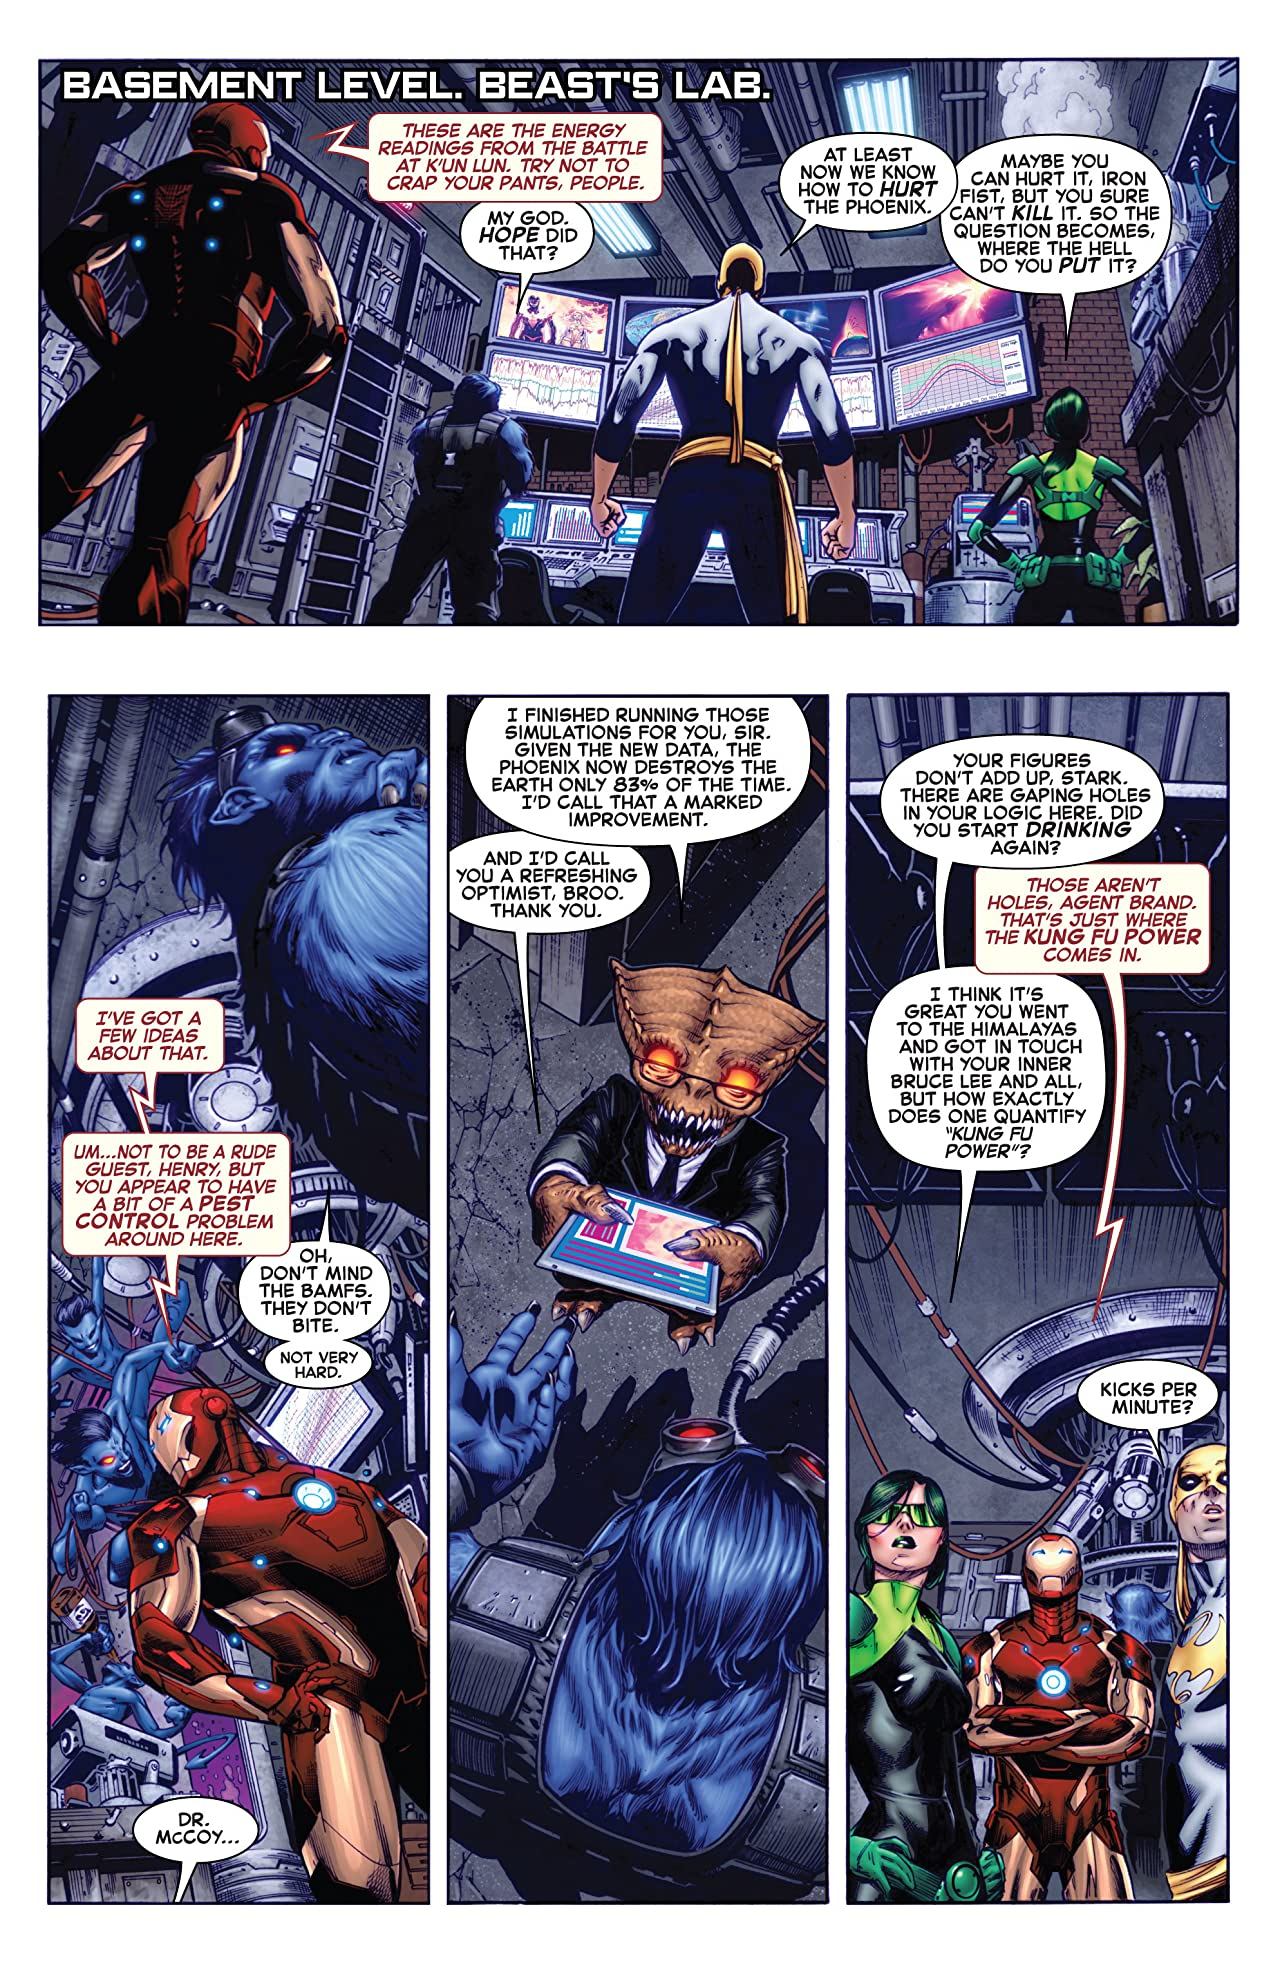 Wolverine and the X-Men #15